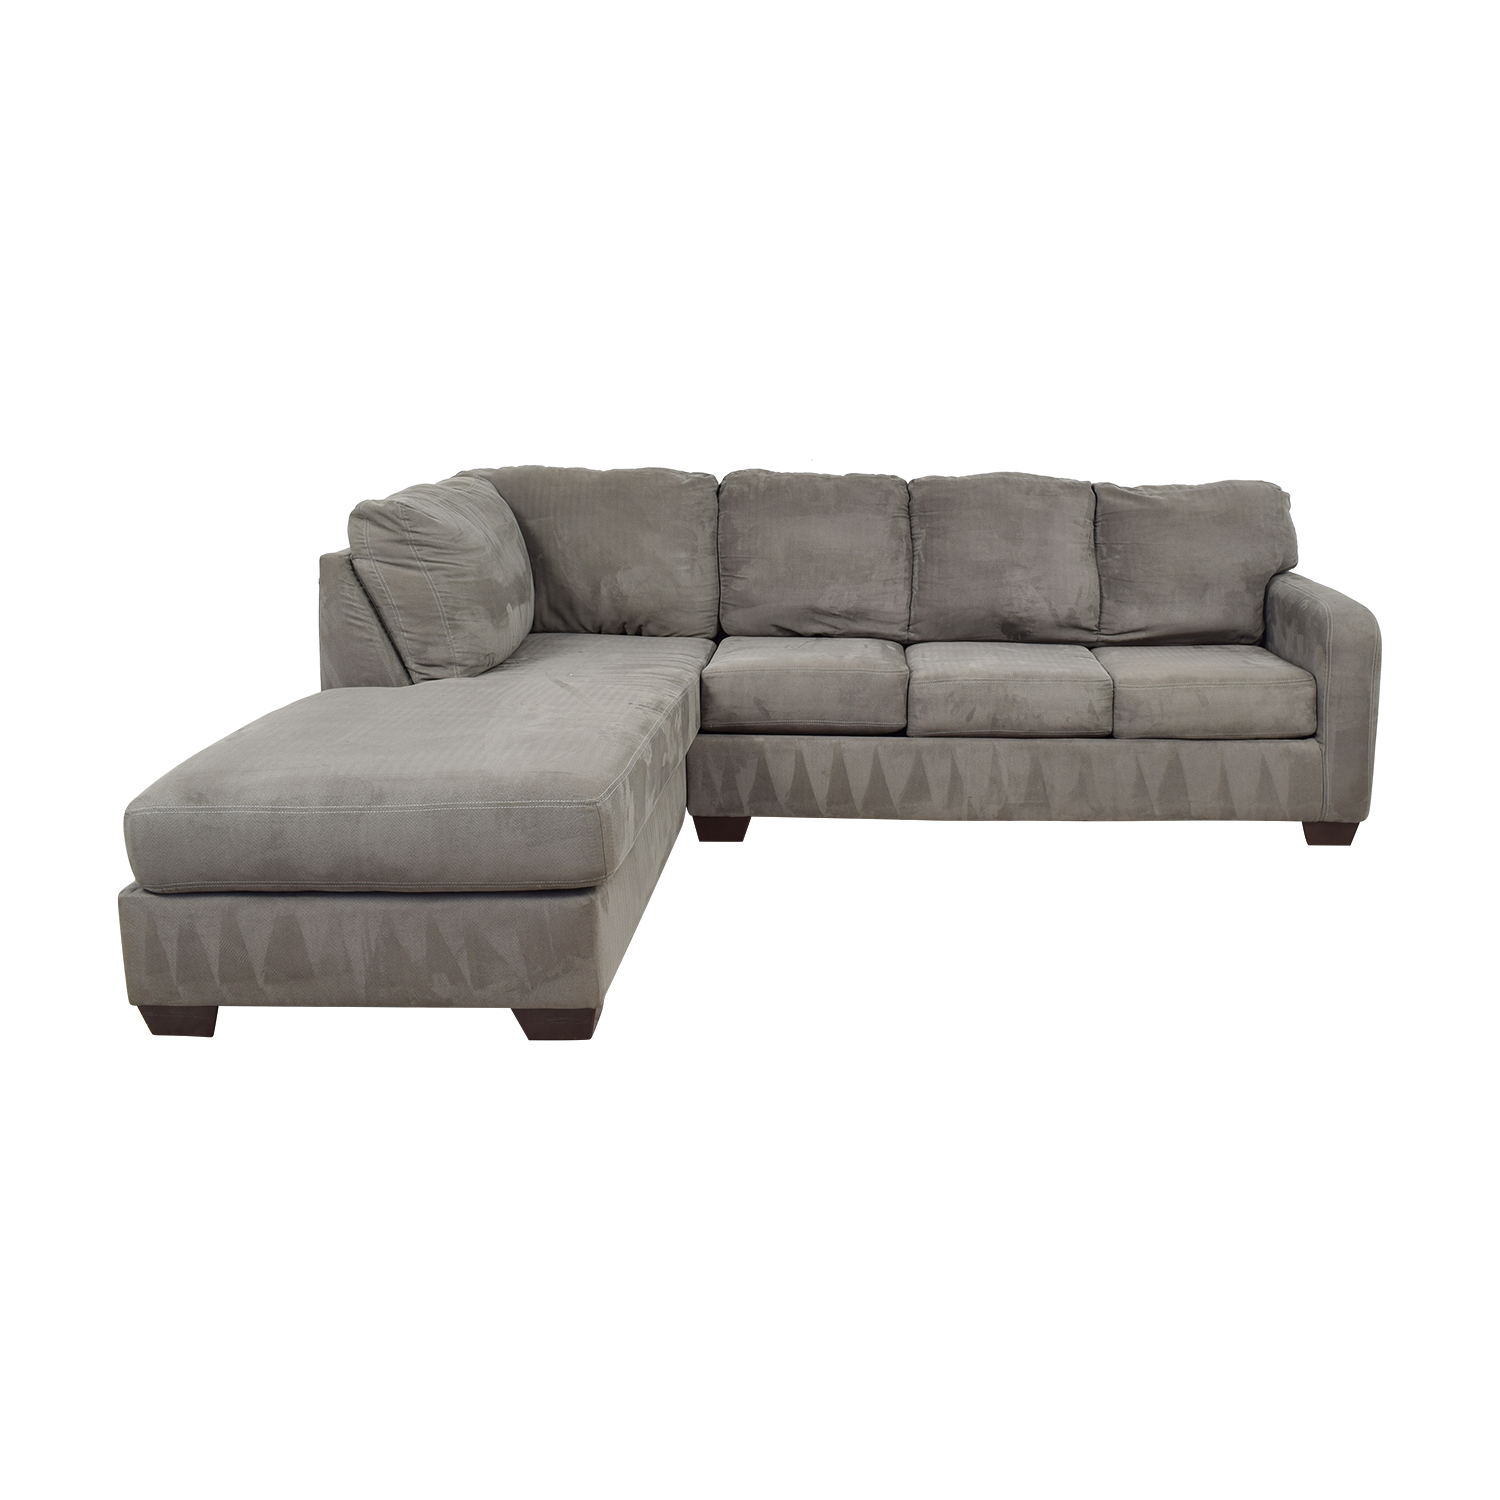 47 off ashley furniture ashley furniture grey chaise sectional sofas